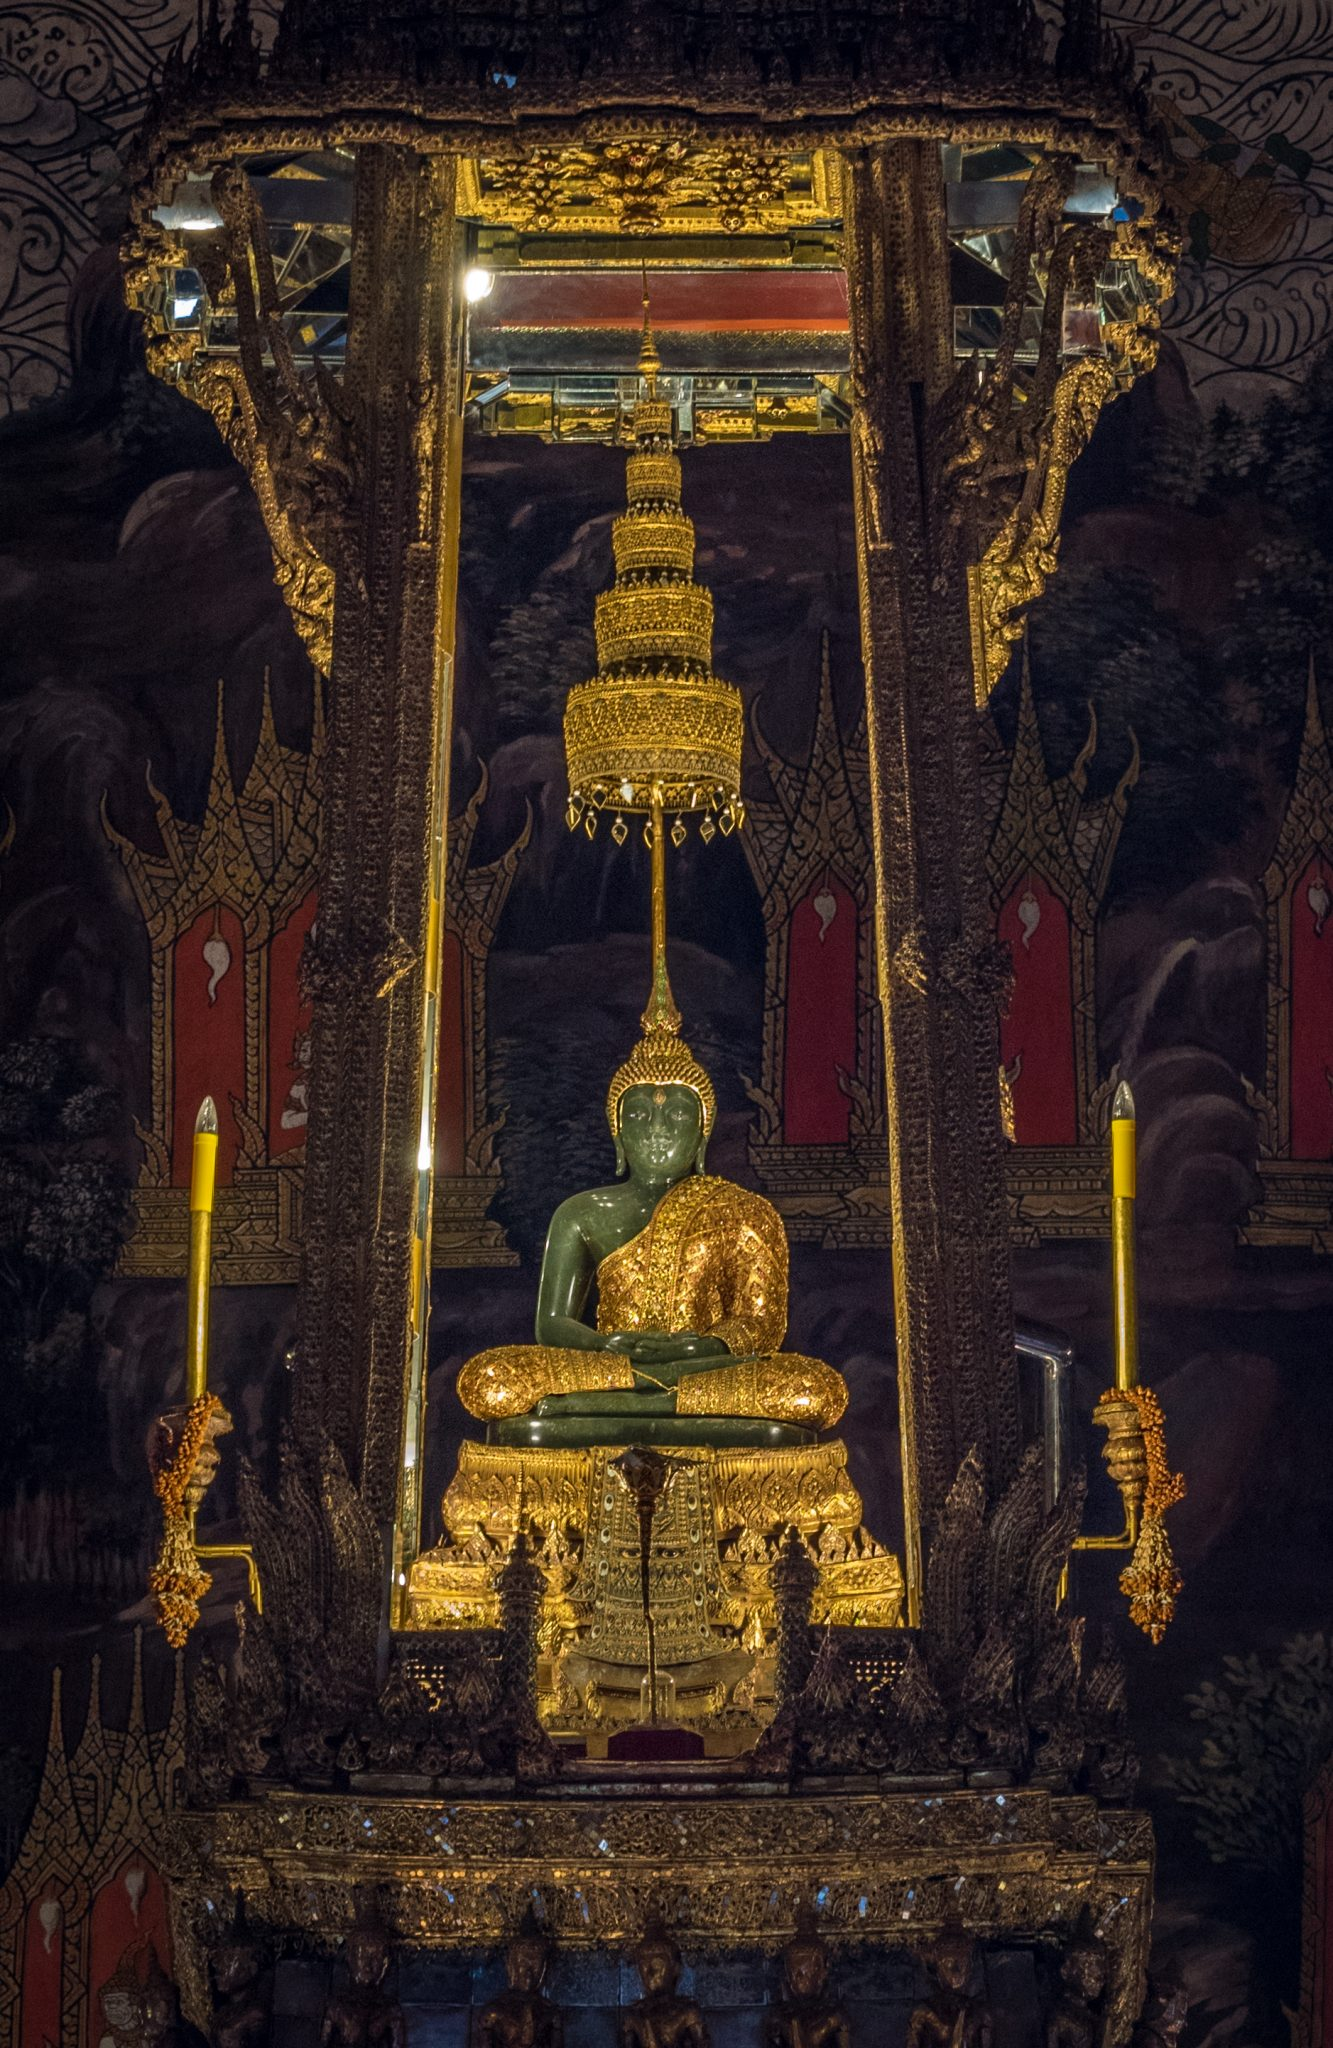 The Emerald Buddha, Wat Phra Kaew, the Grand Palace, Bangkok, Thailand